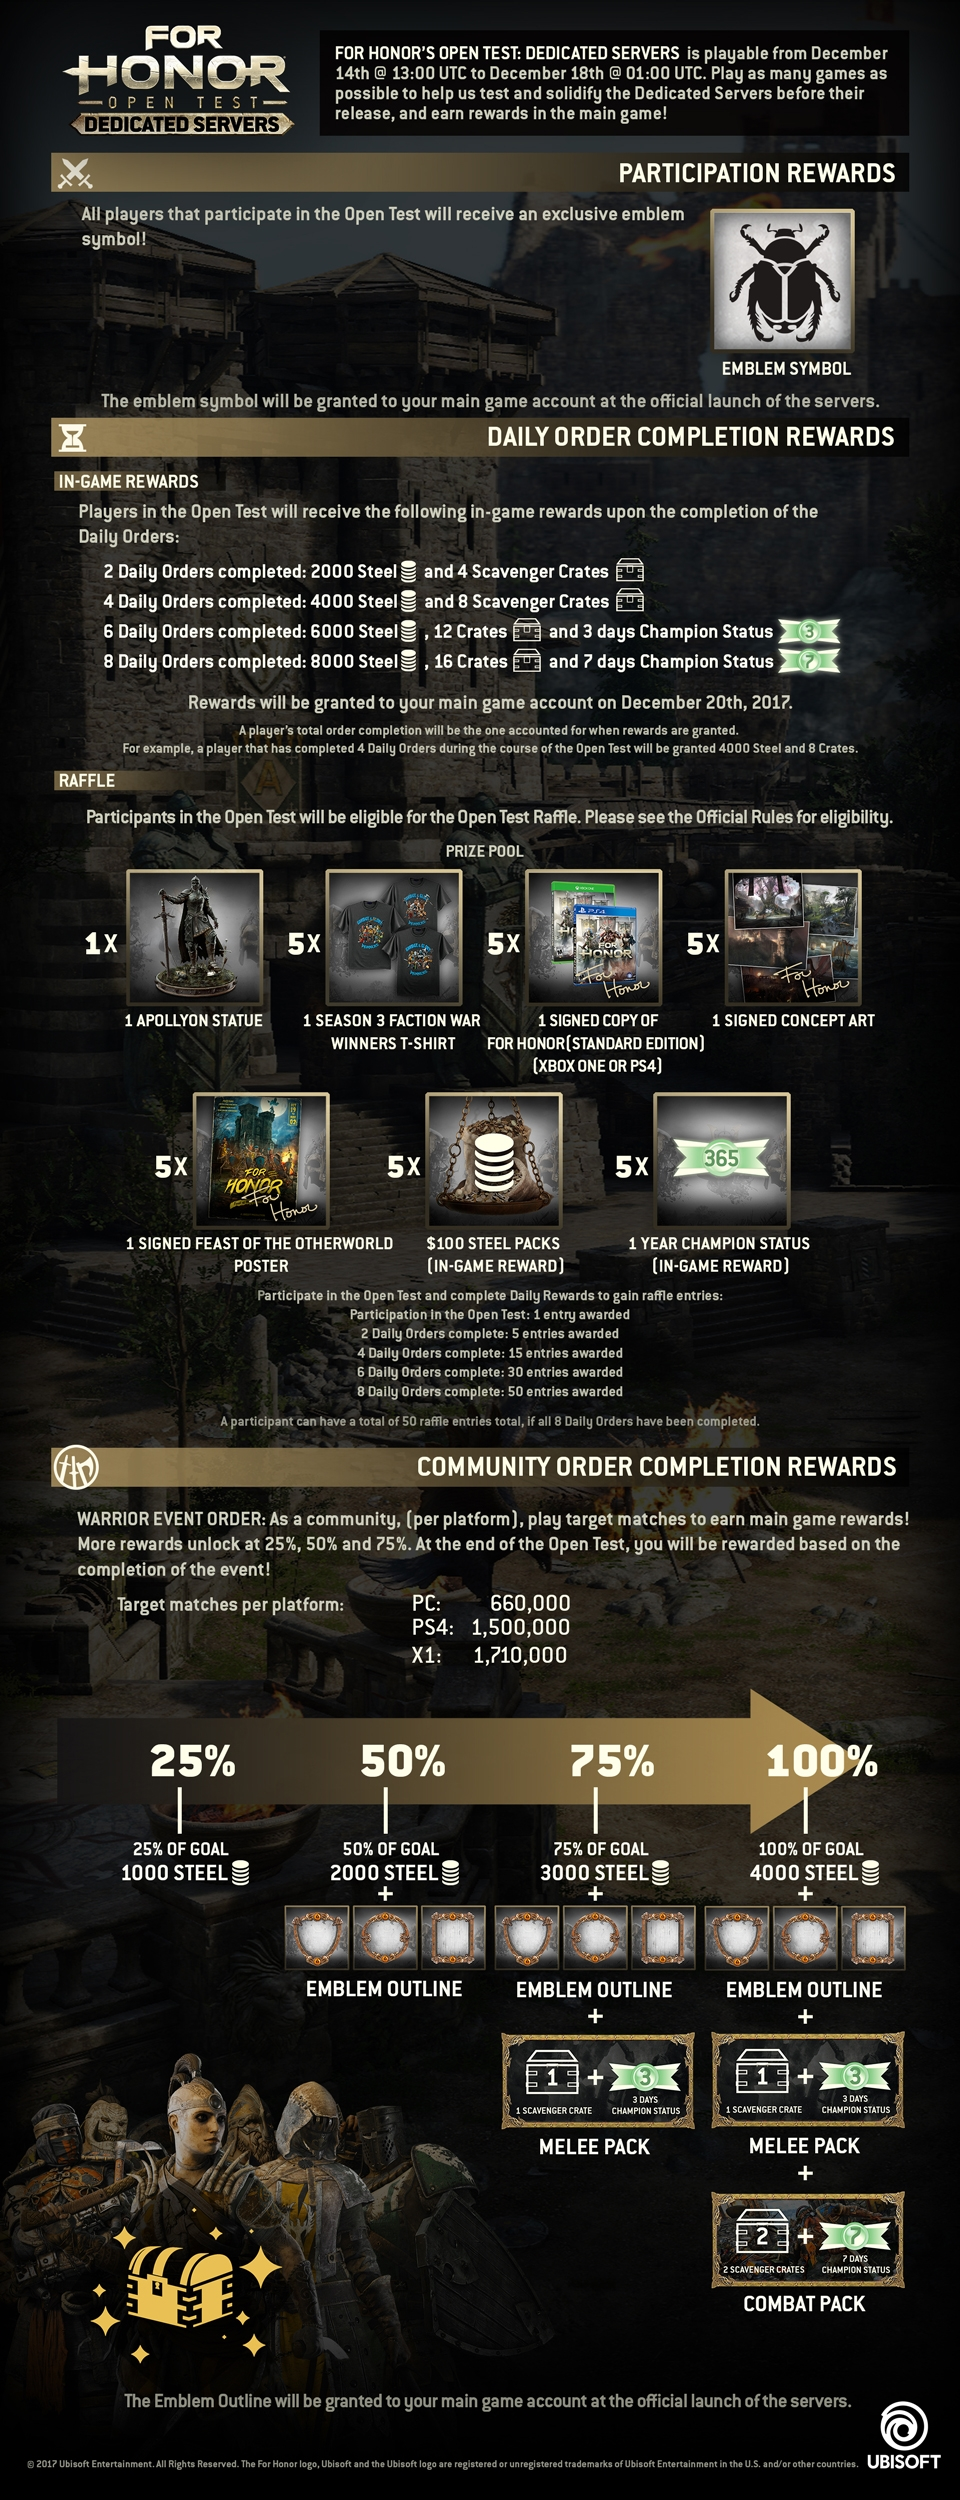 For Honor – Test the Dedicated Servers and Earn Rewards From December 14-18 | DeviceDaily.com